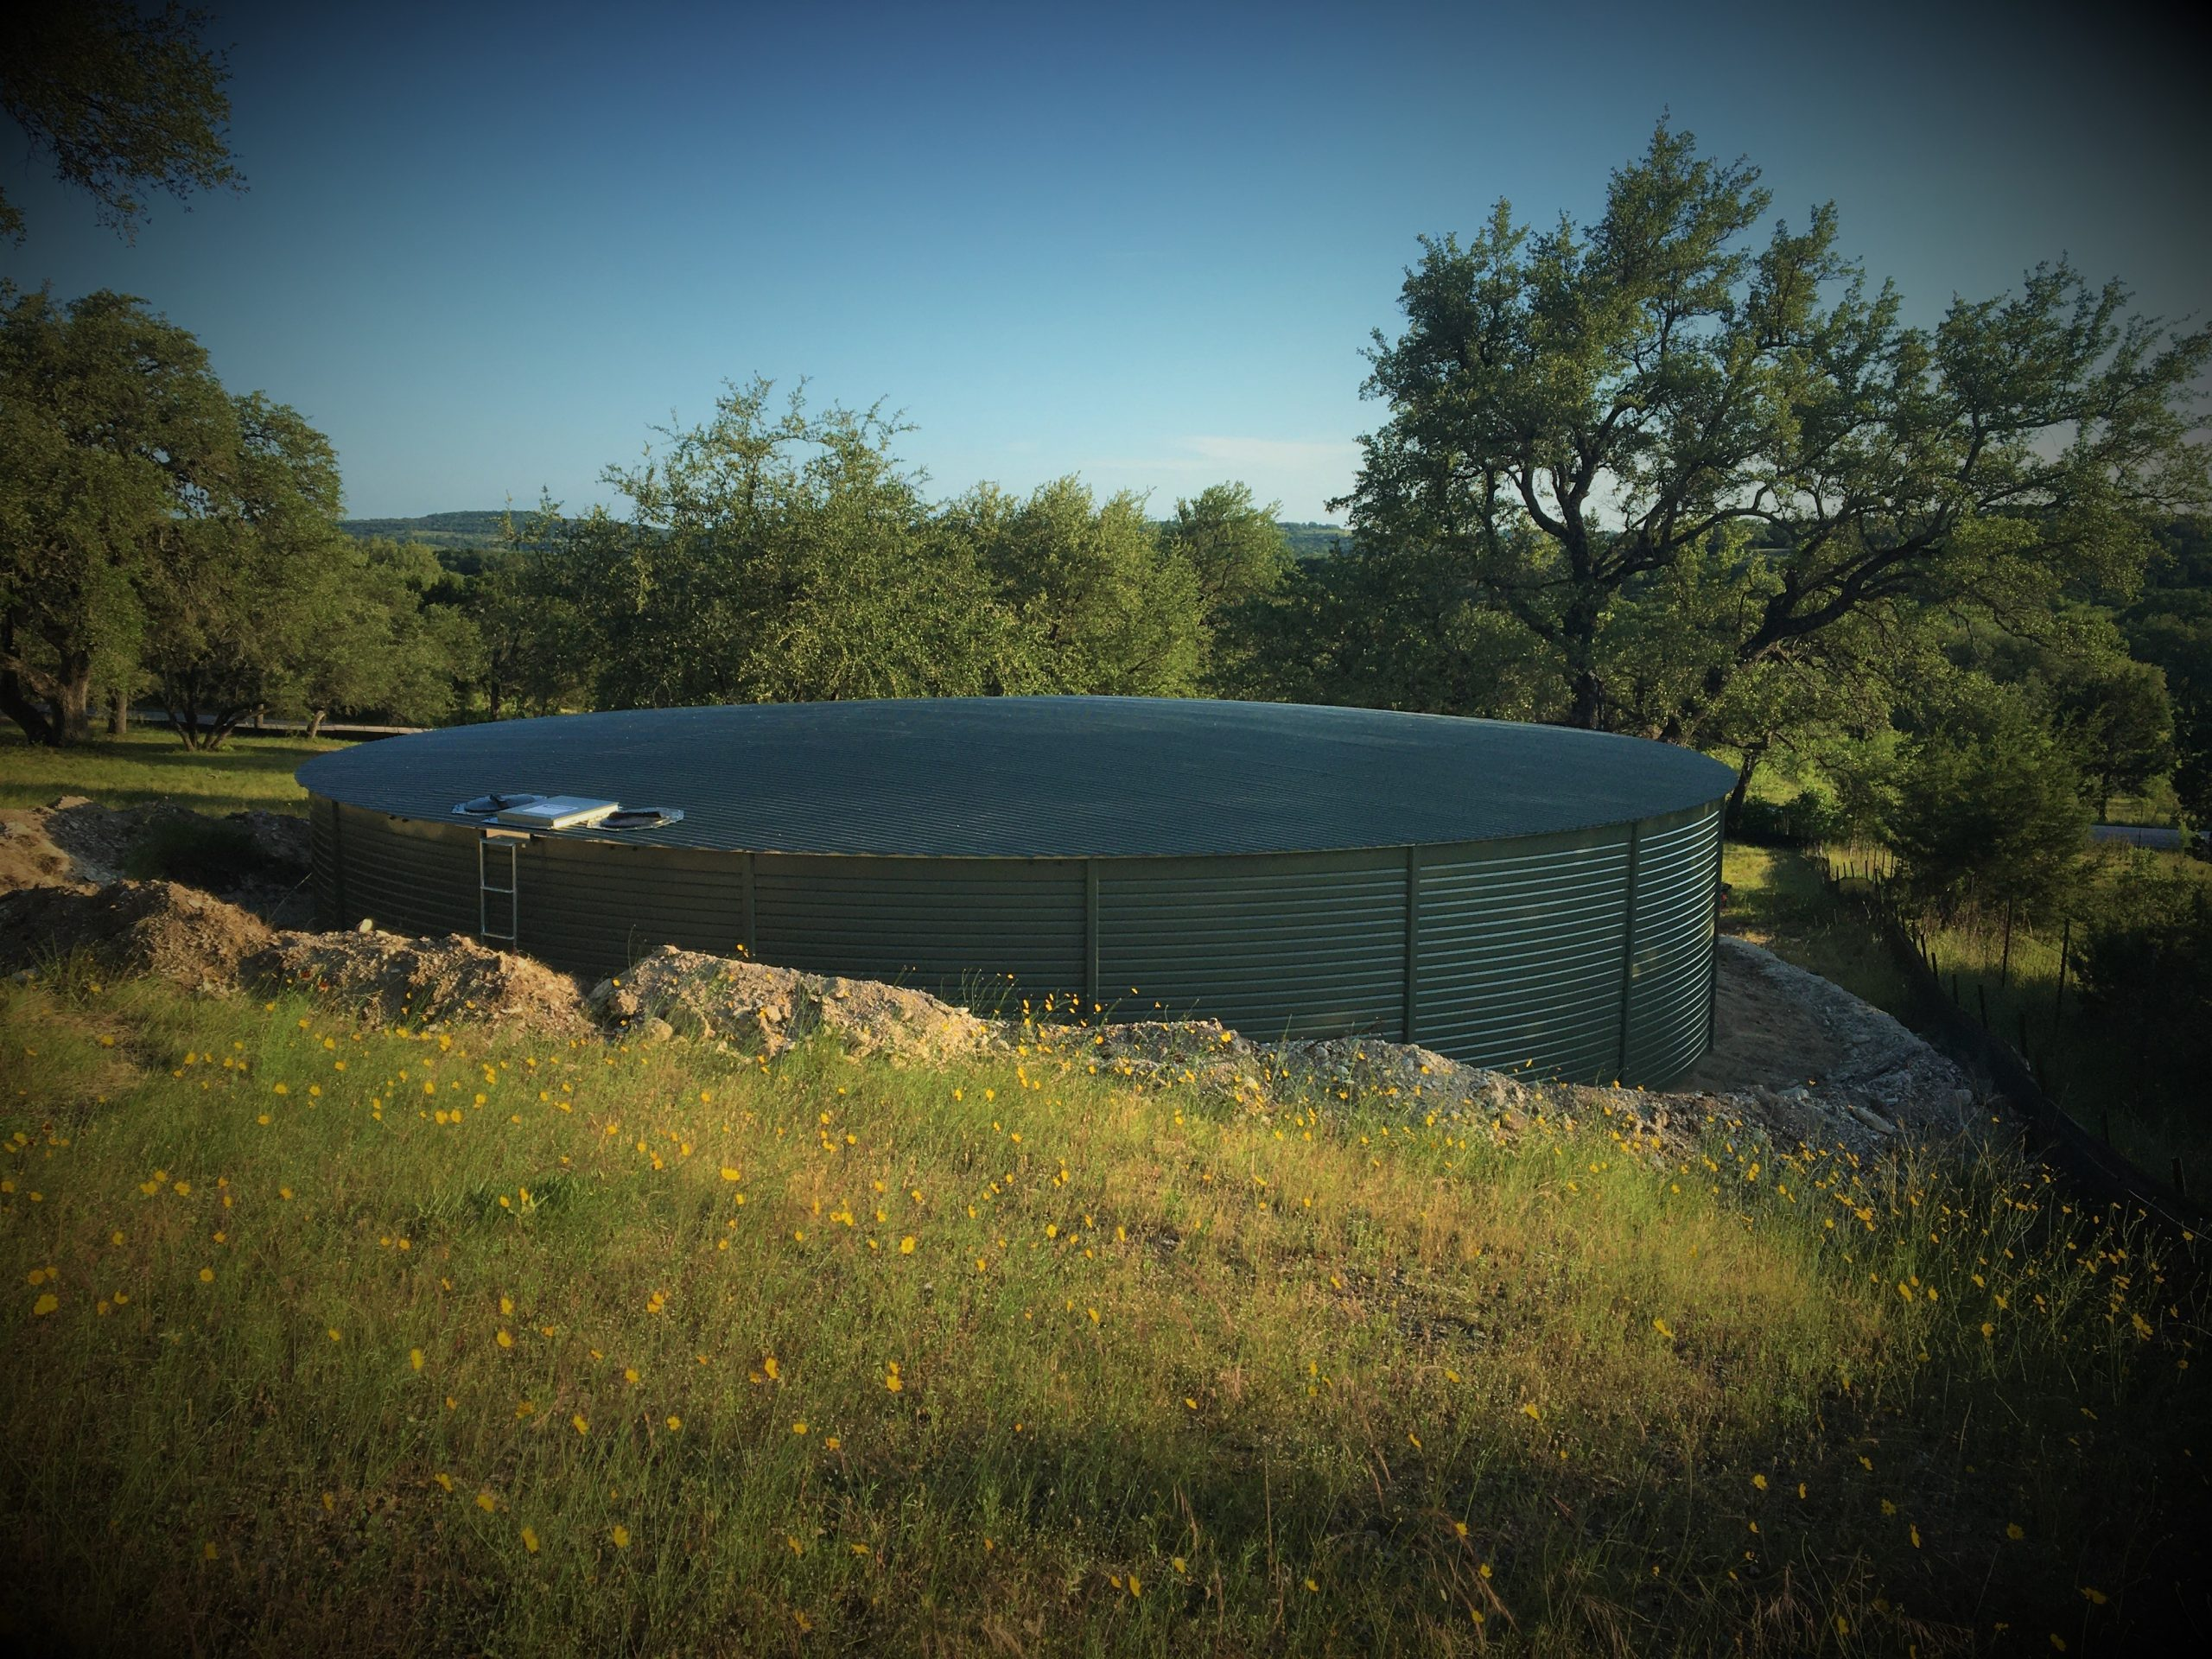 Lakota Water Company rainwater harvesting system with a Mangrove Pioneer Water Tank